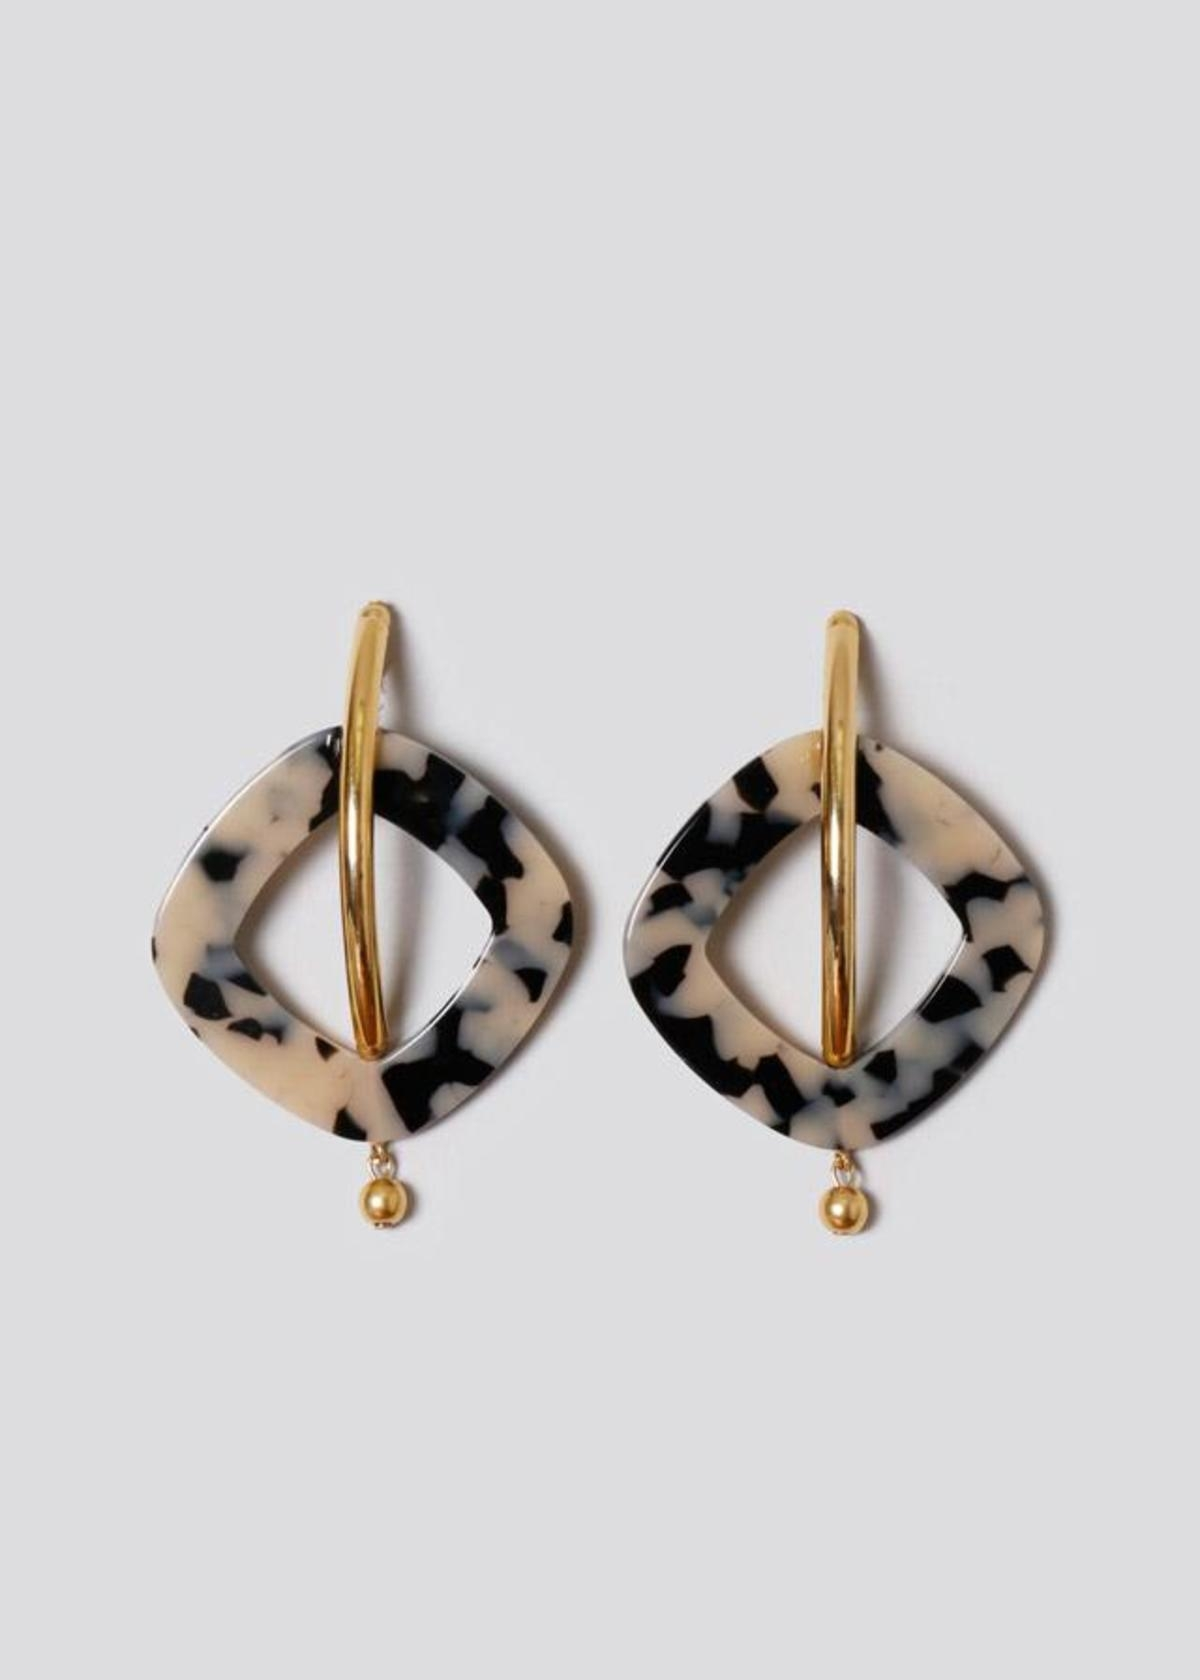 Realm-Earring-in-Dalmatian-Gold-20180201202431.jpg